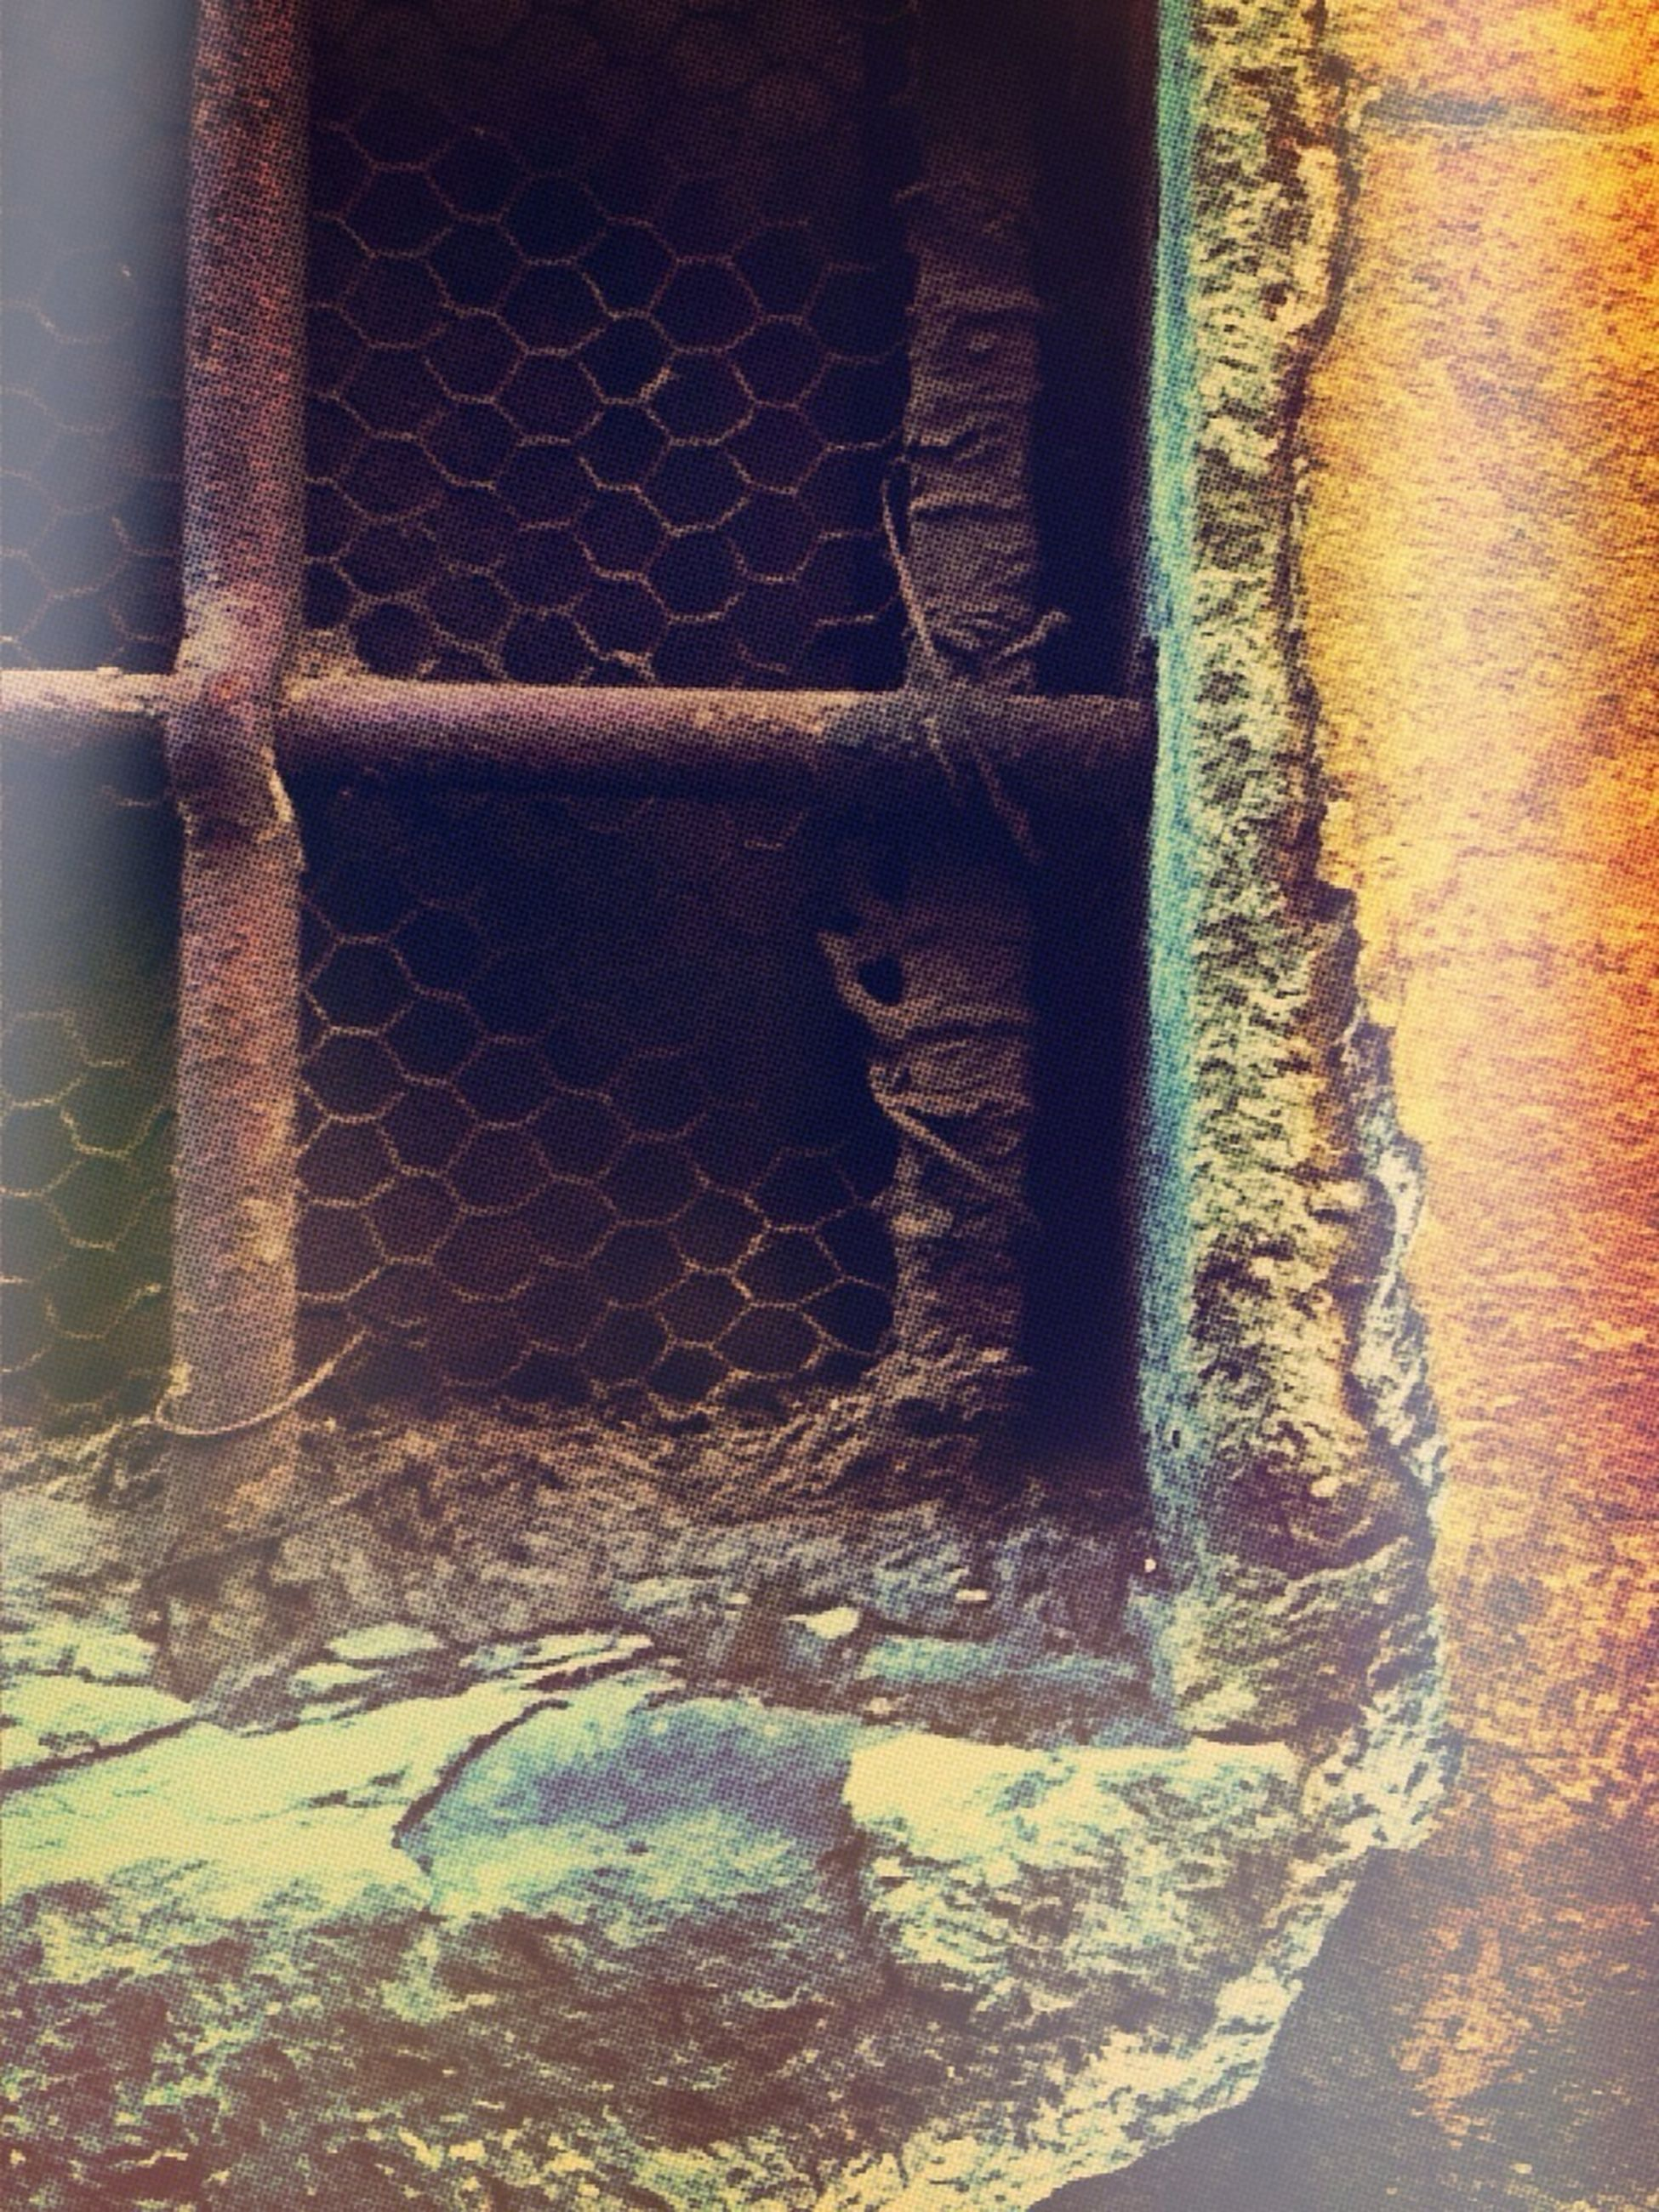 close-up, textured, metal, indoors, wall - building feature, old, full frame, pattern, wood - material, no people, backgrounds, protection, day, wall, safety, weathered, built structure, door, rusty